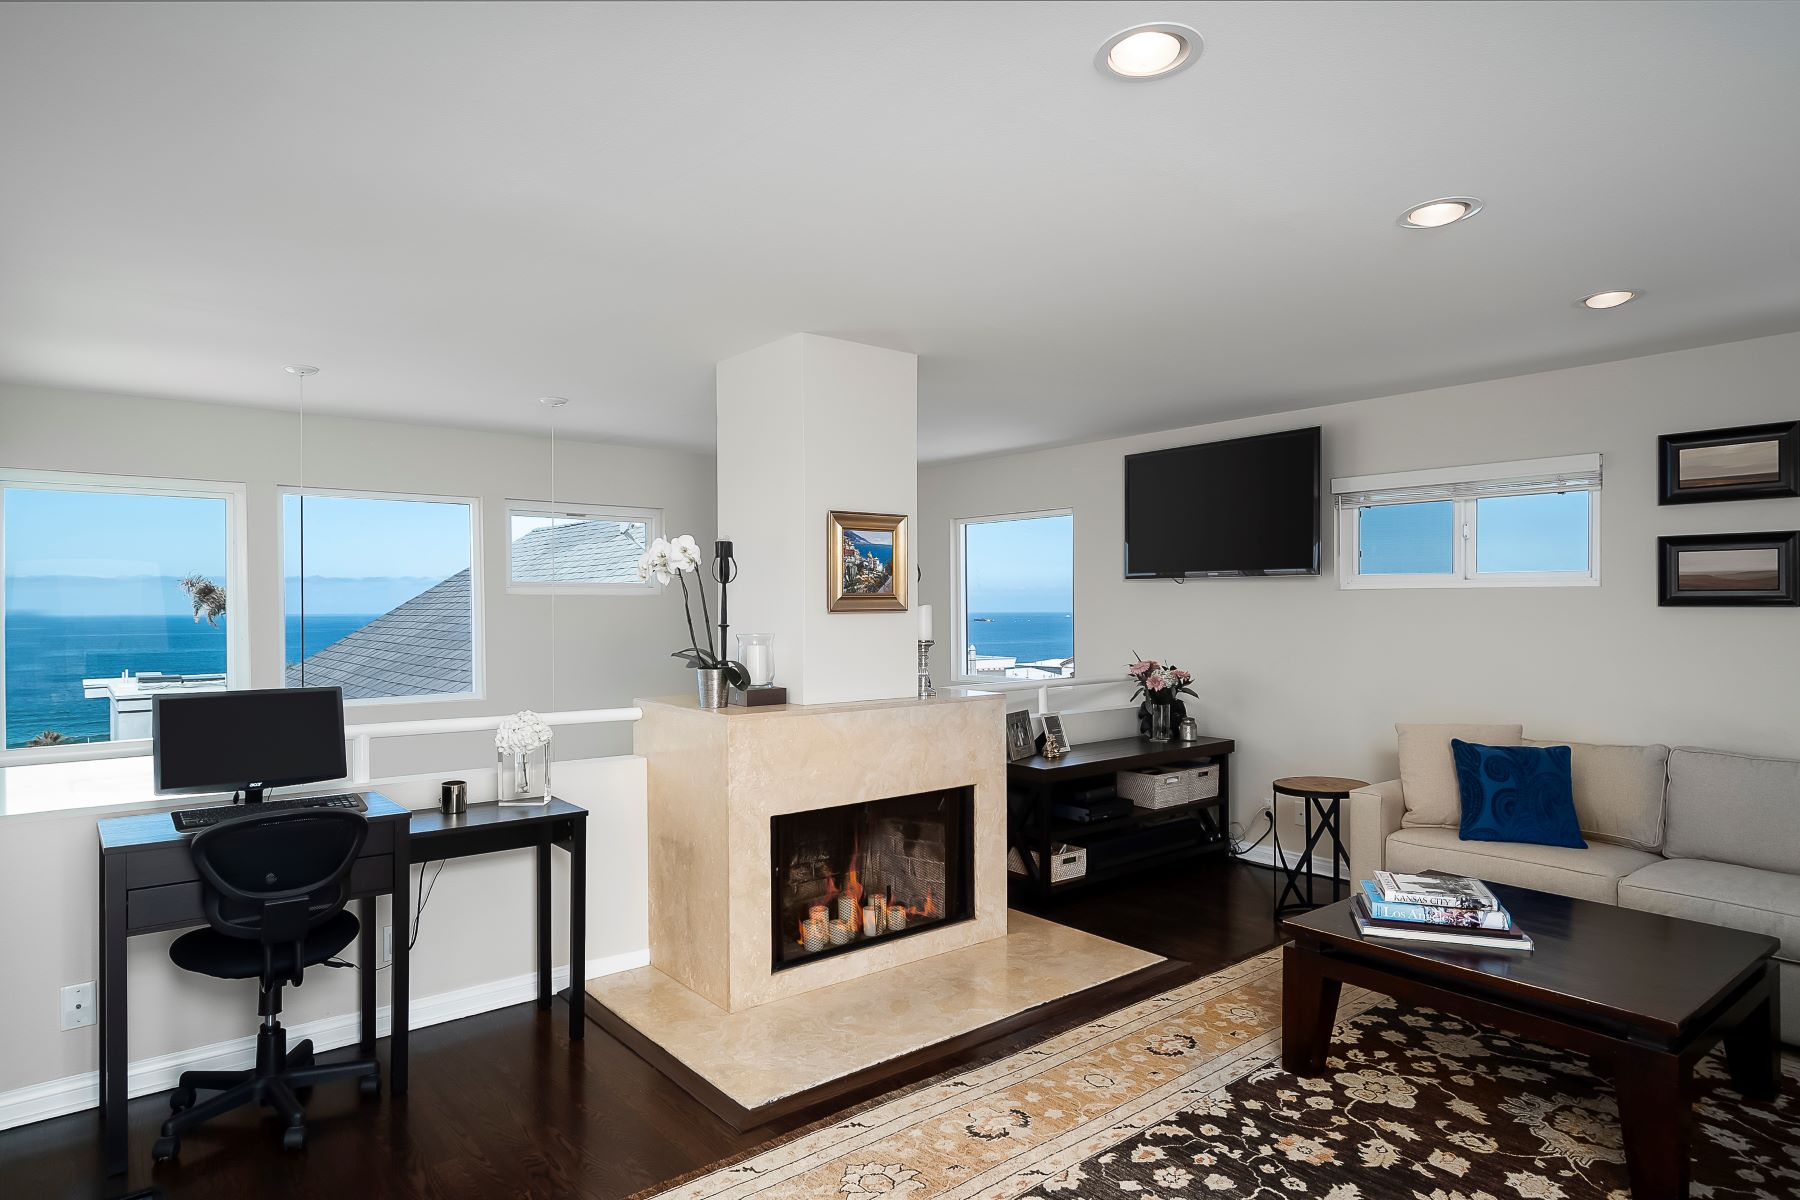 townhouses for Active at 3207 Crest Drive, Manhattan Beach, CA 90266 3207 Crest Drive Manhattan Beach, California 90266 United States